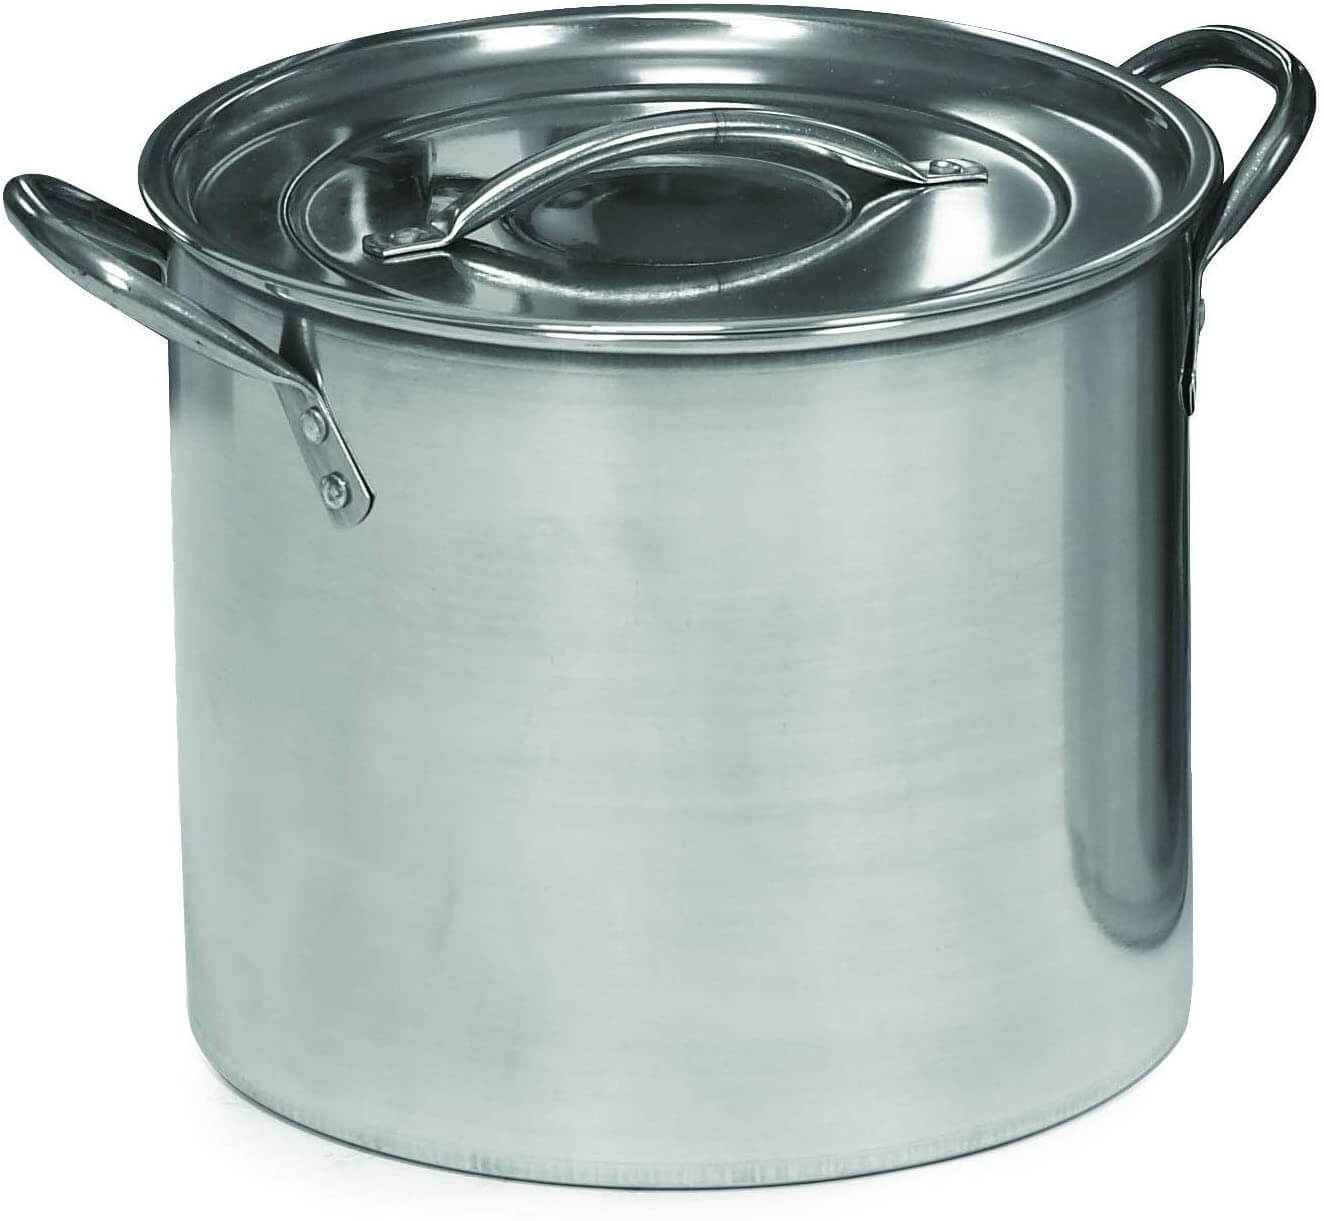 IMUSA USA L300-40314 Stainless Steel Stock Pot